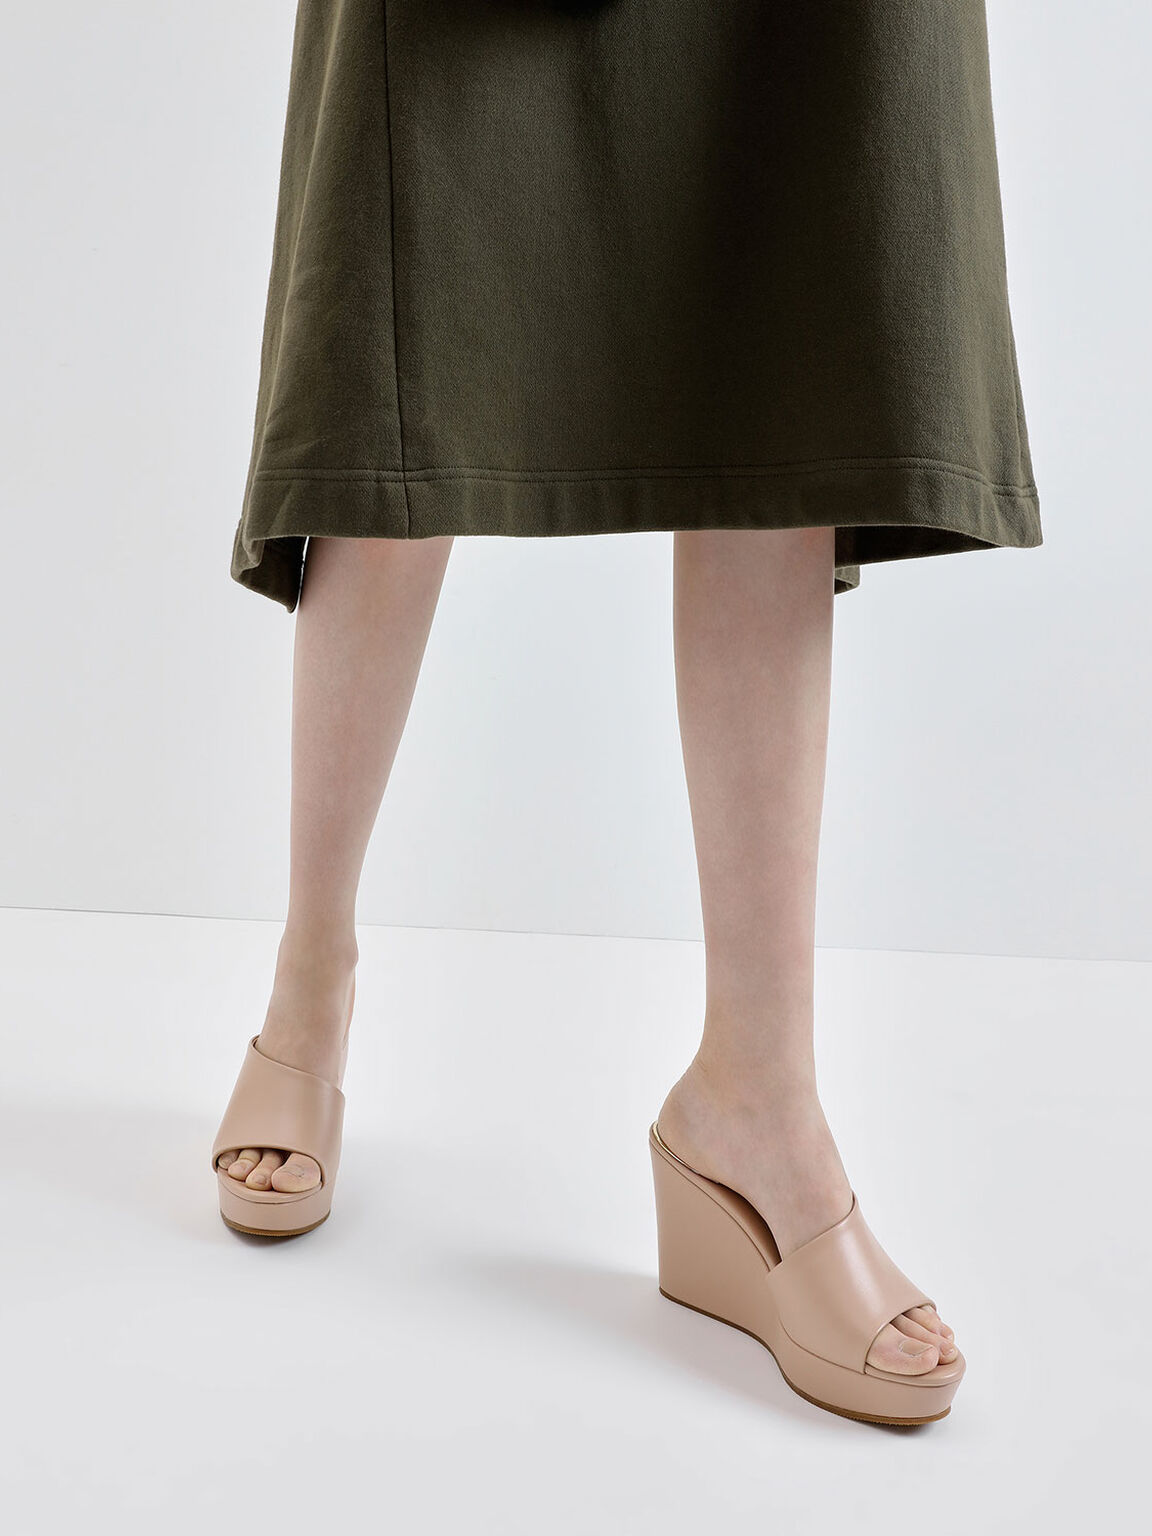 Asymmetric Platform Wedges, Nude, hi-res